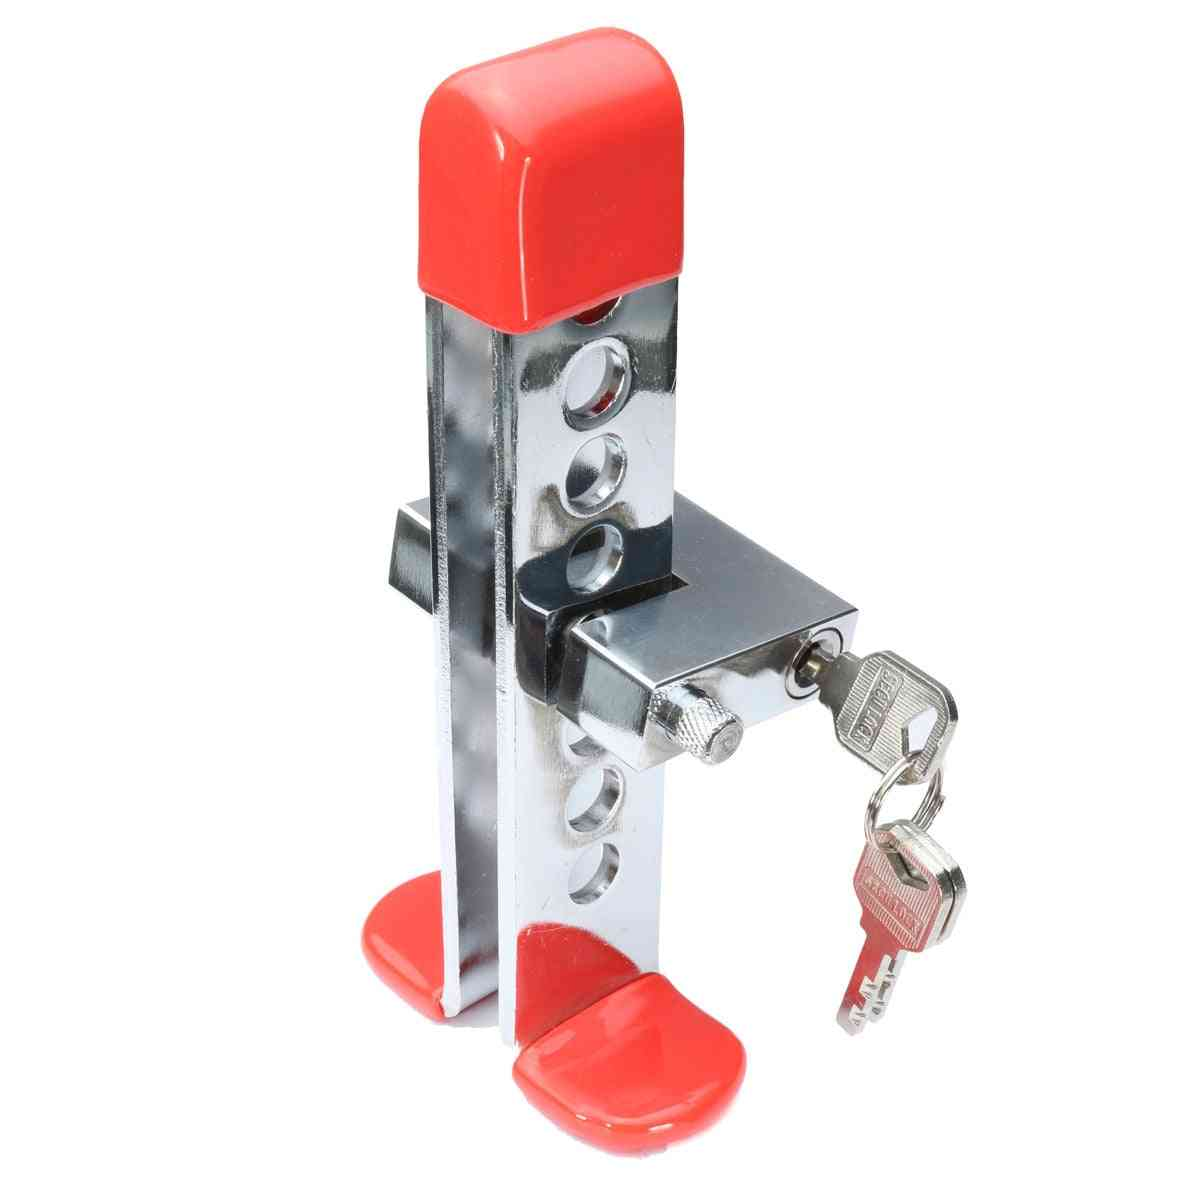 Steel Anti-theft Brake & Clutch Throttle Lever, Security Lock For Car